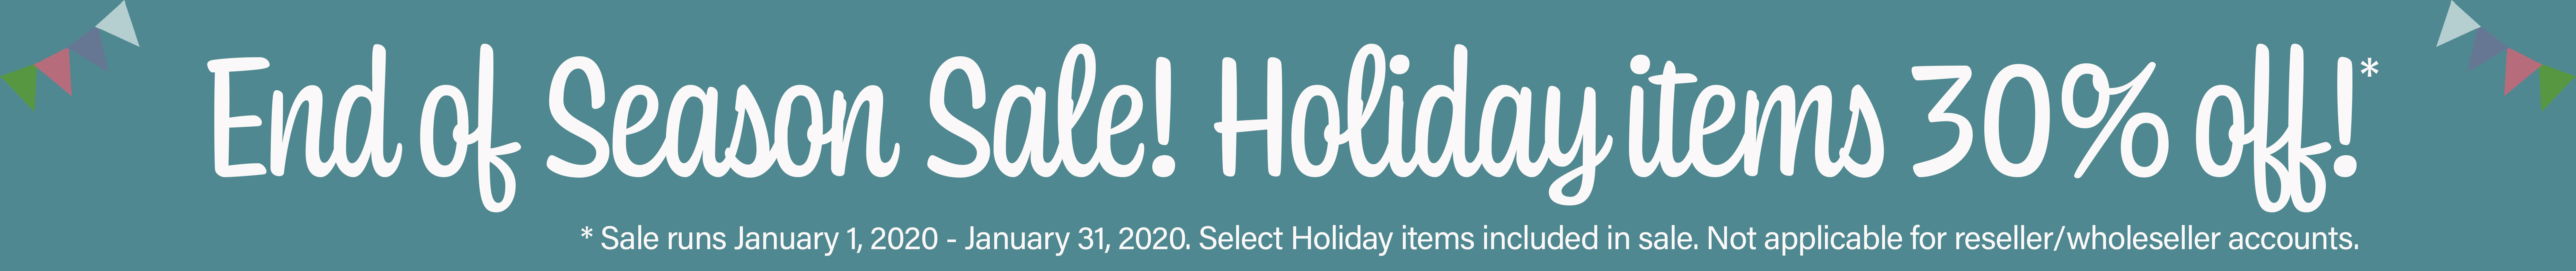 holiday-sale-banner-nav.png